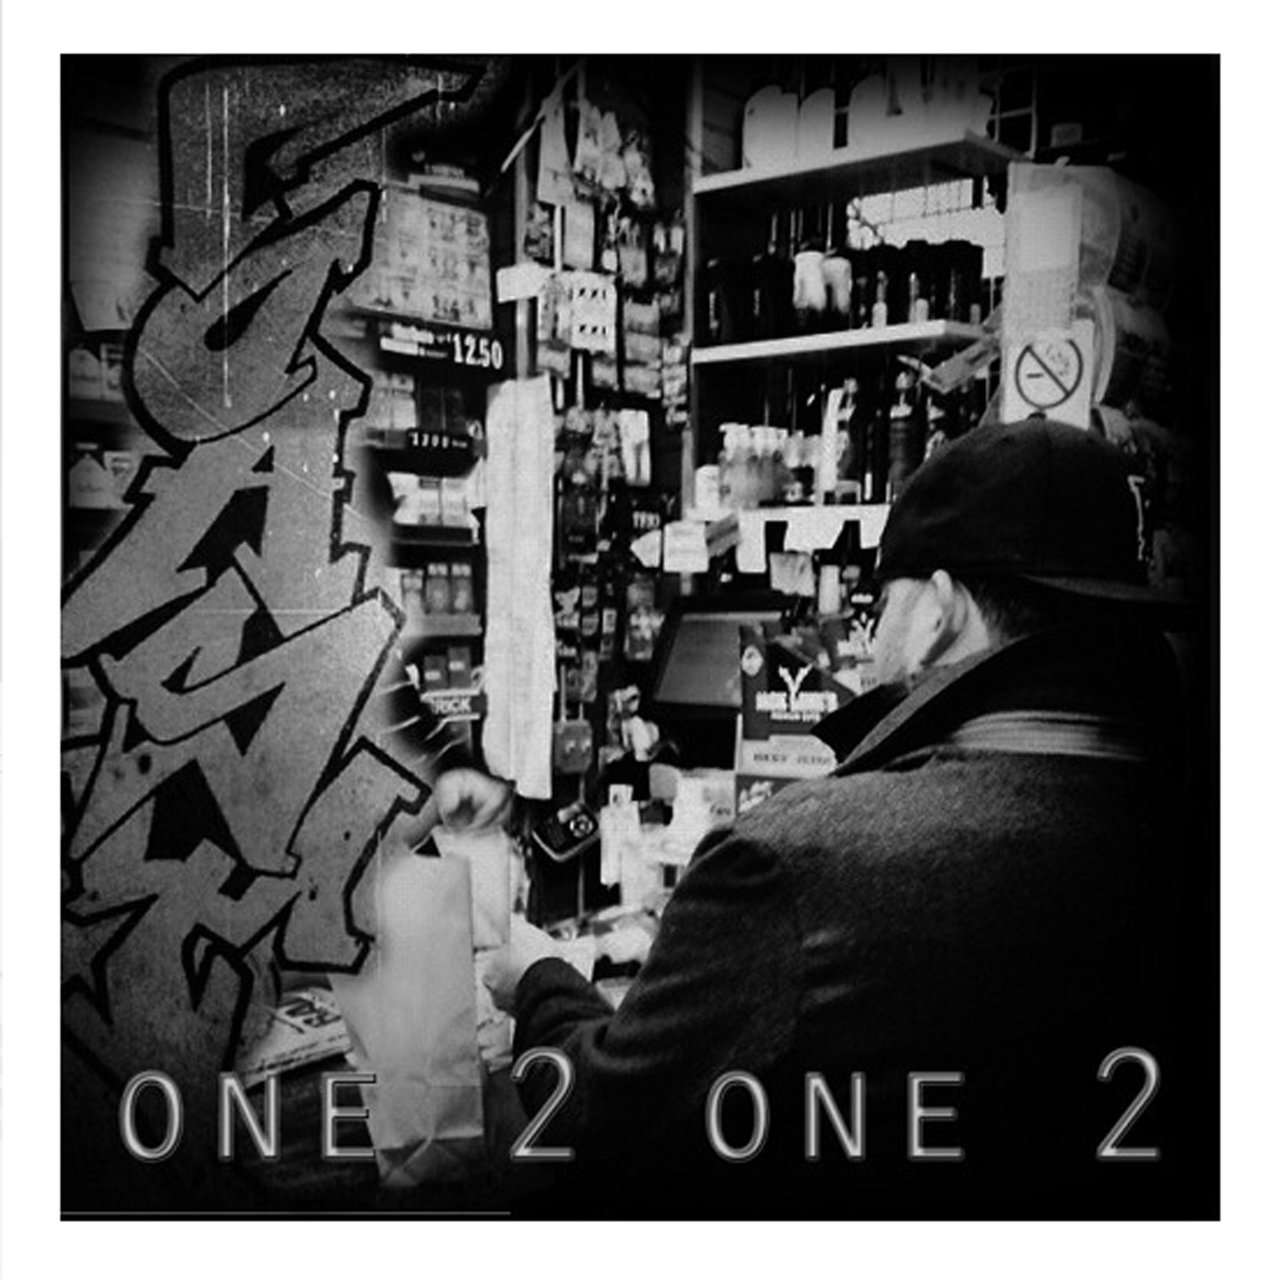 One 2 One 2